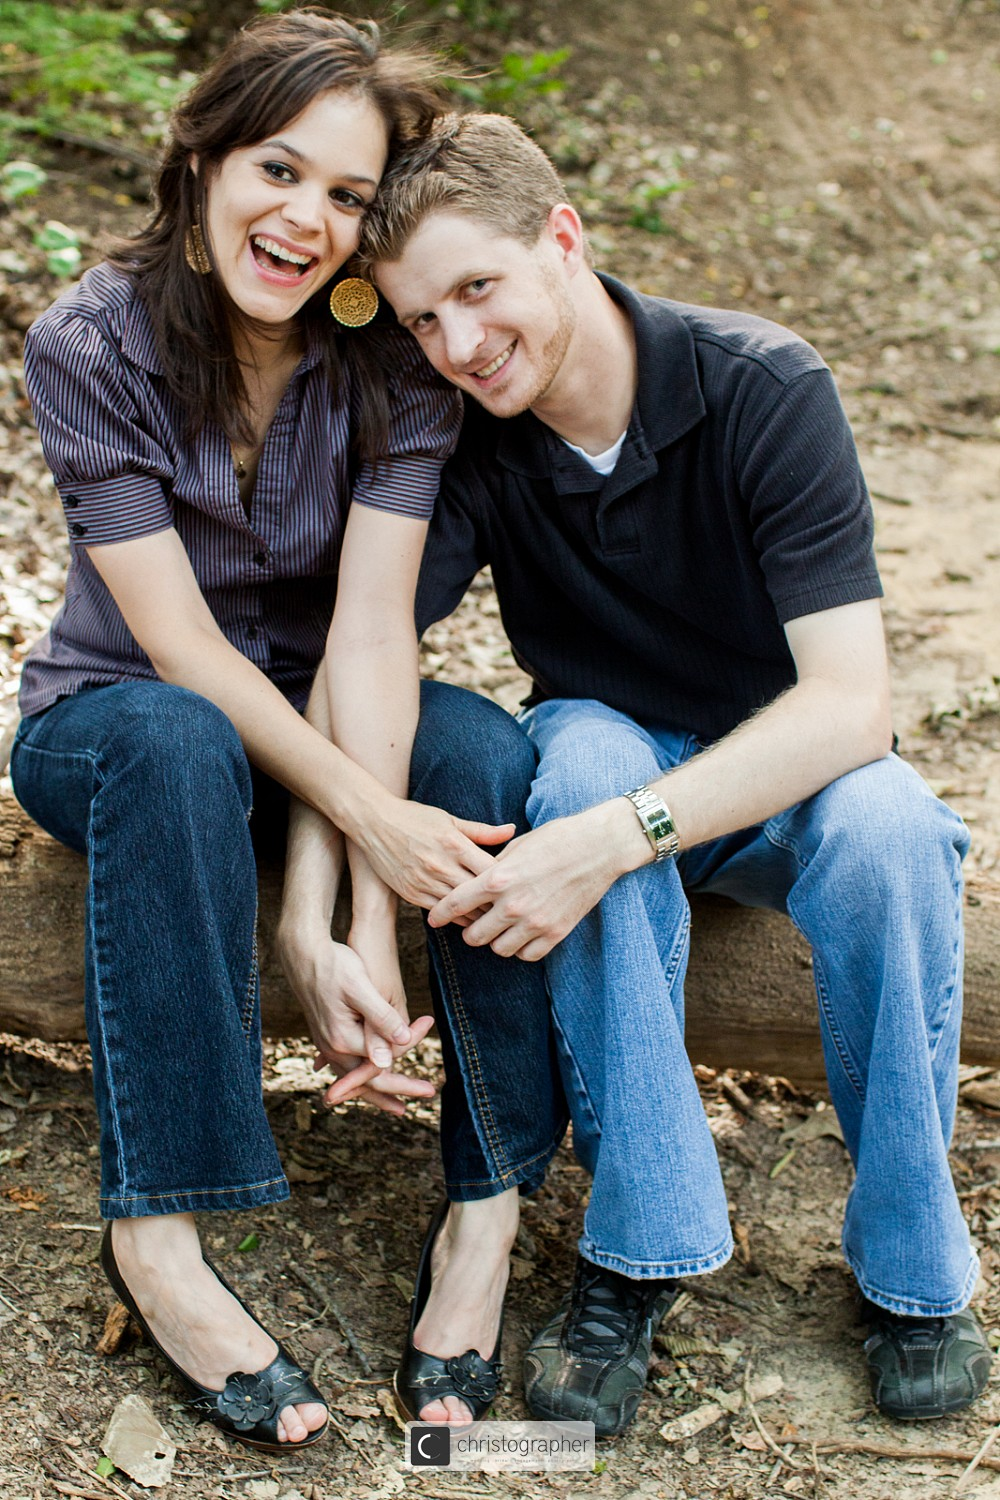 Gina-Lucas-Esession-62.jpg